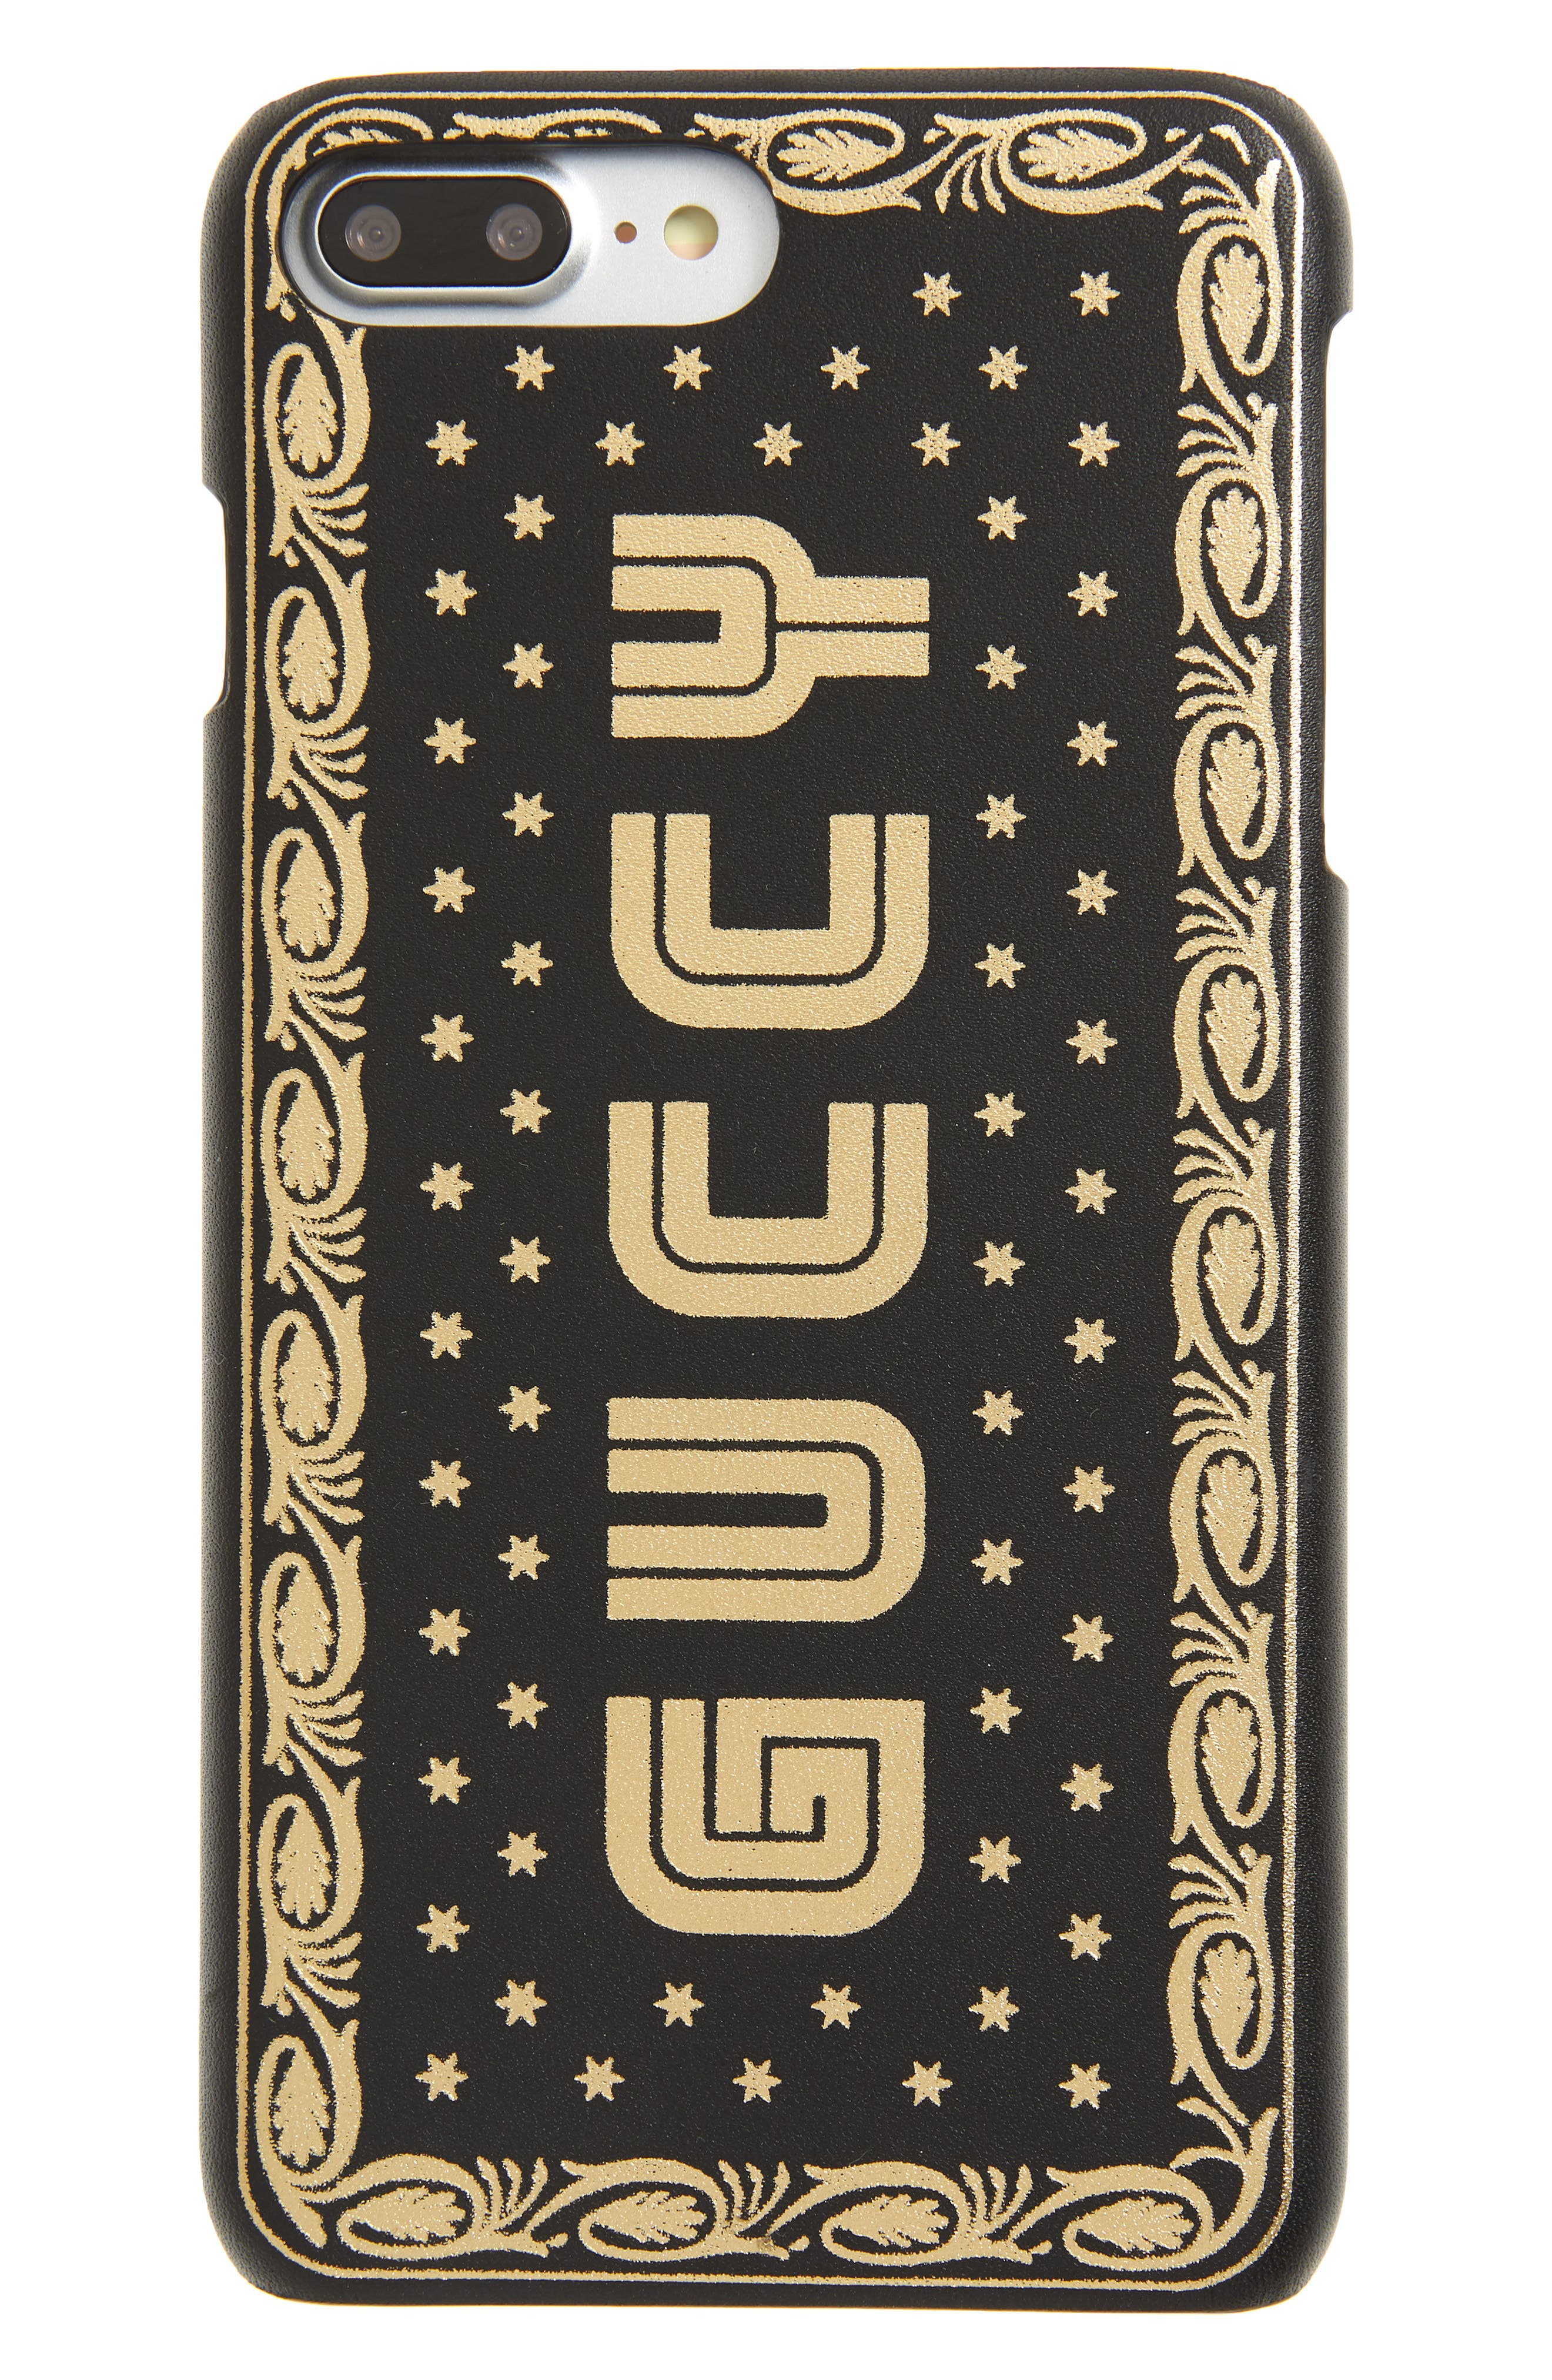 Gucci Guccy Logo Moon & Stars Leather iPhone 7 Plus Case